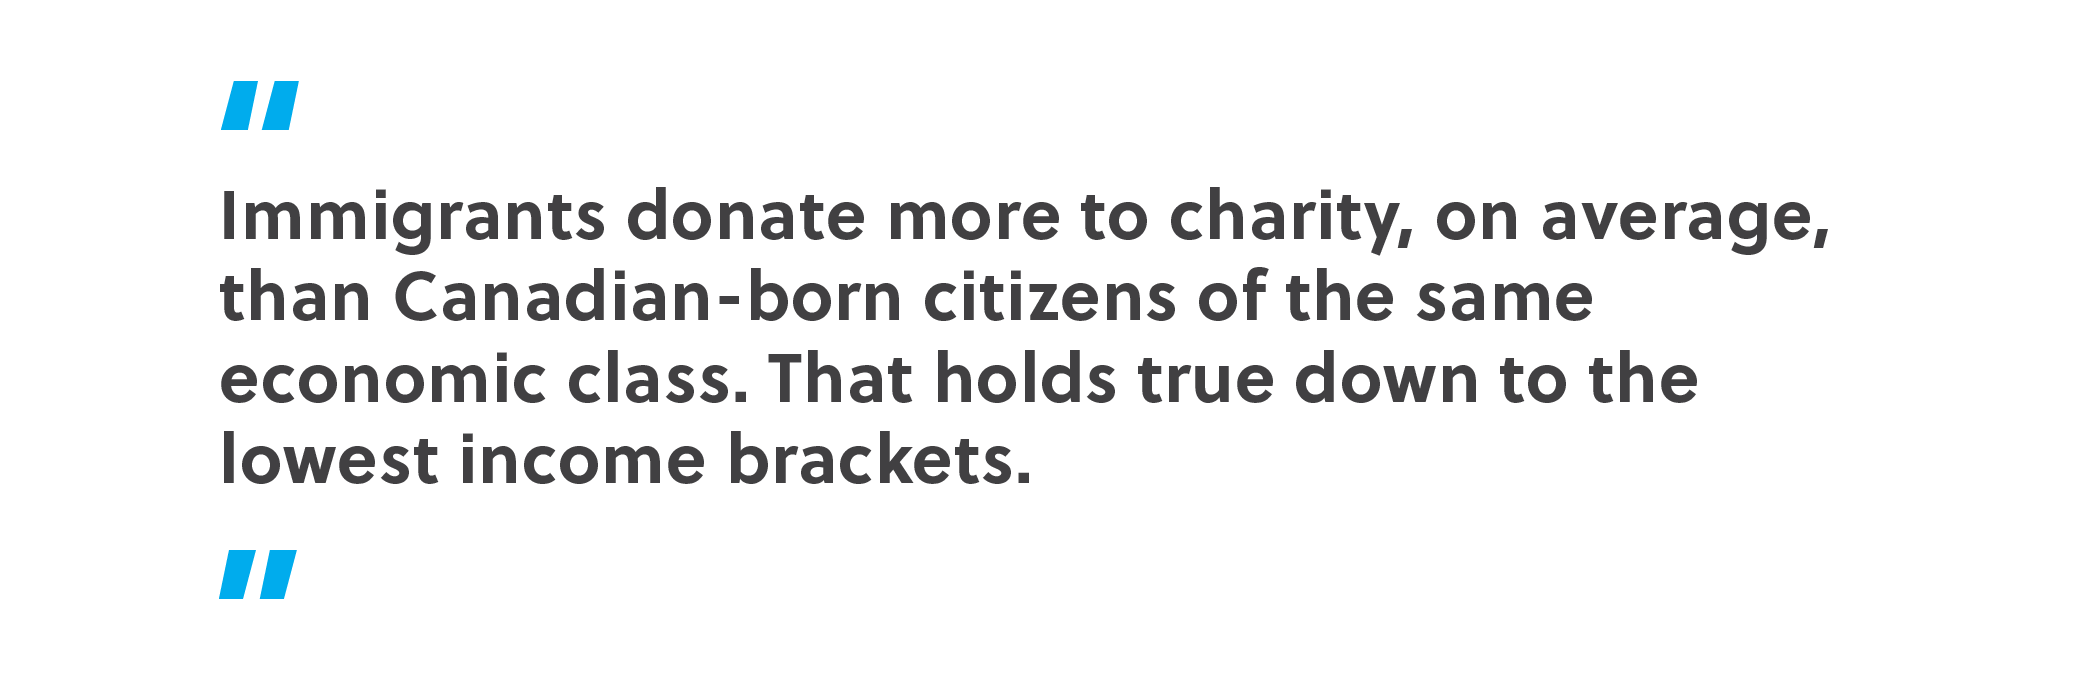 Immigrants donate more to charity, on average, than Canadian-born citizens of the same economic class, according to Statistics Canada. That holds true down to the lowest income brackets.